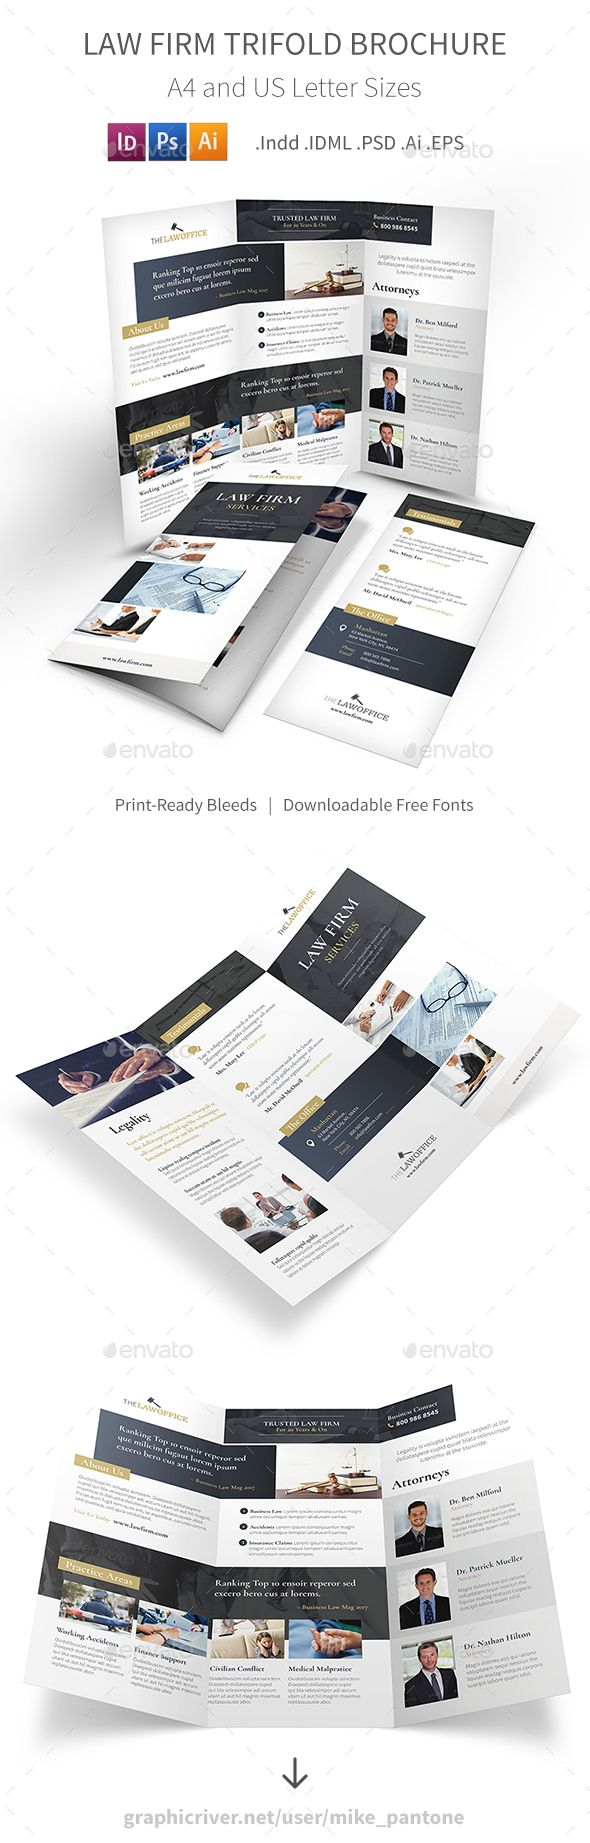 Law Firm Trifold Brochure Template PSD, Vector EPS, InDesign INDD, AI Illustrator